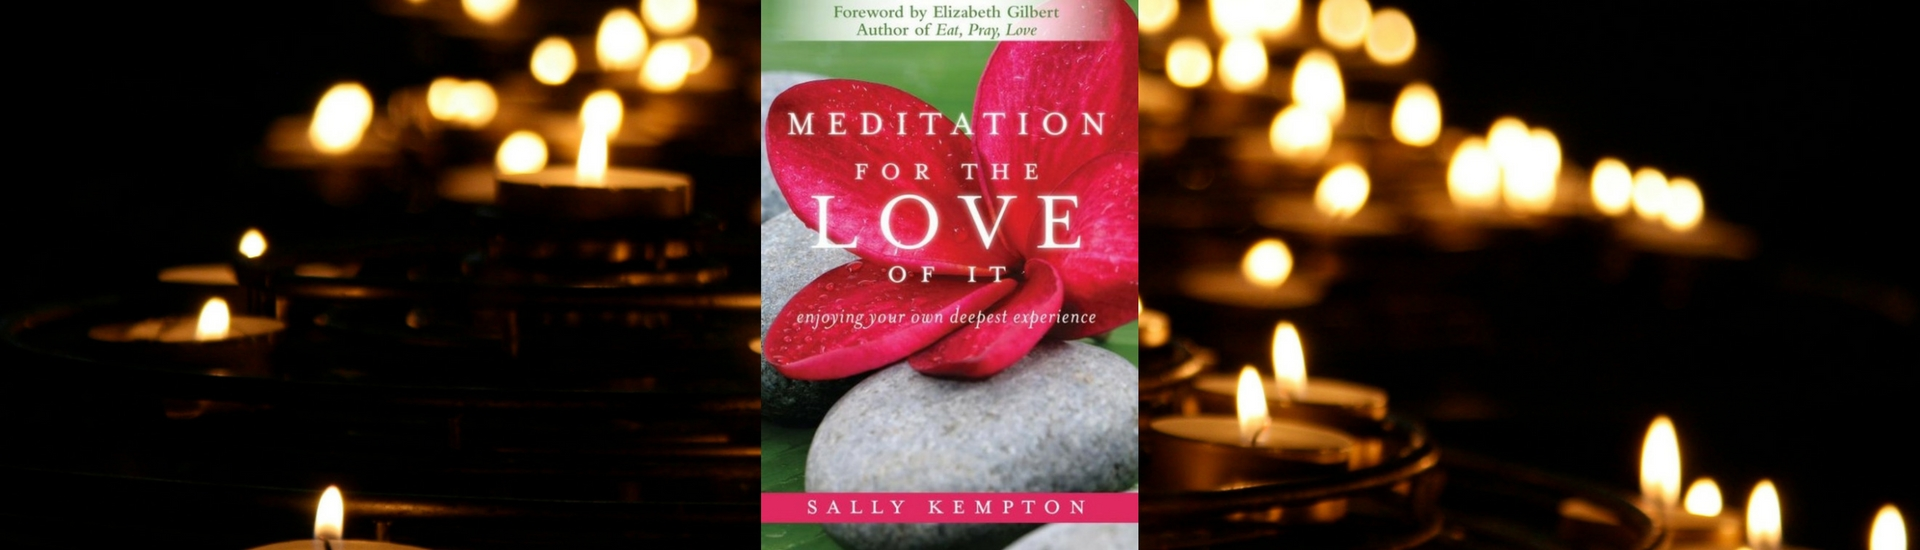 Book Review: Sally Kempton's Meditation for the Love of It